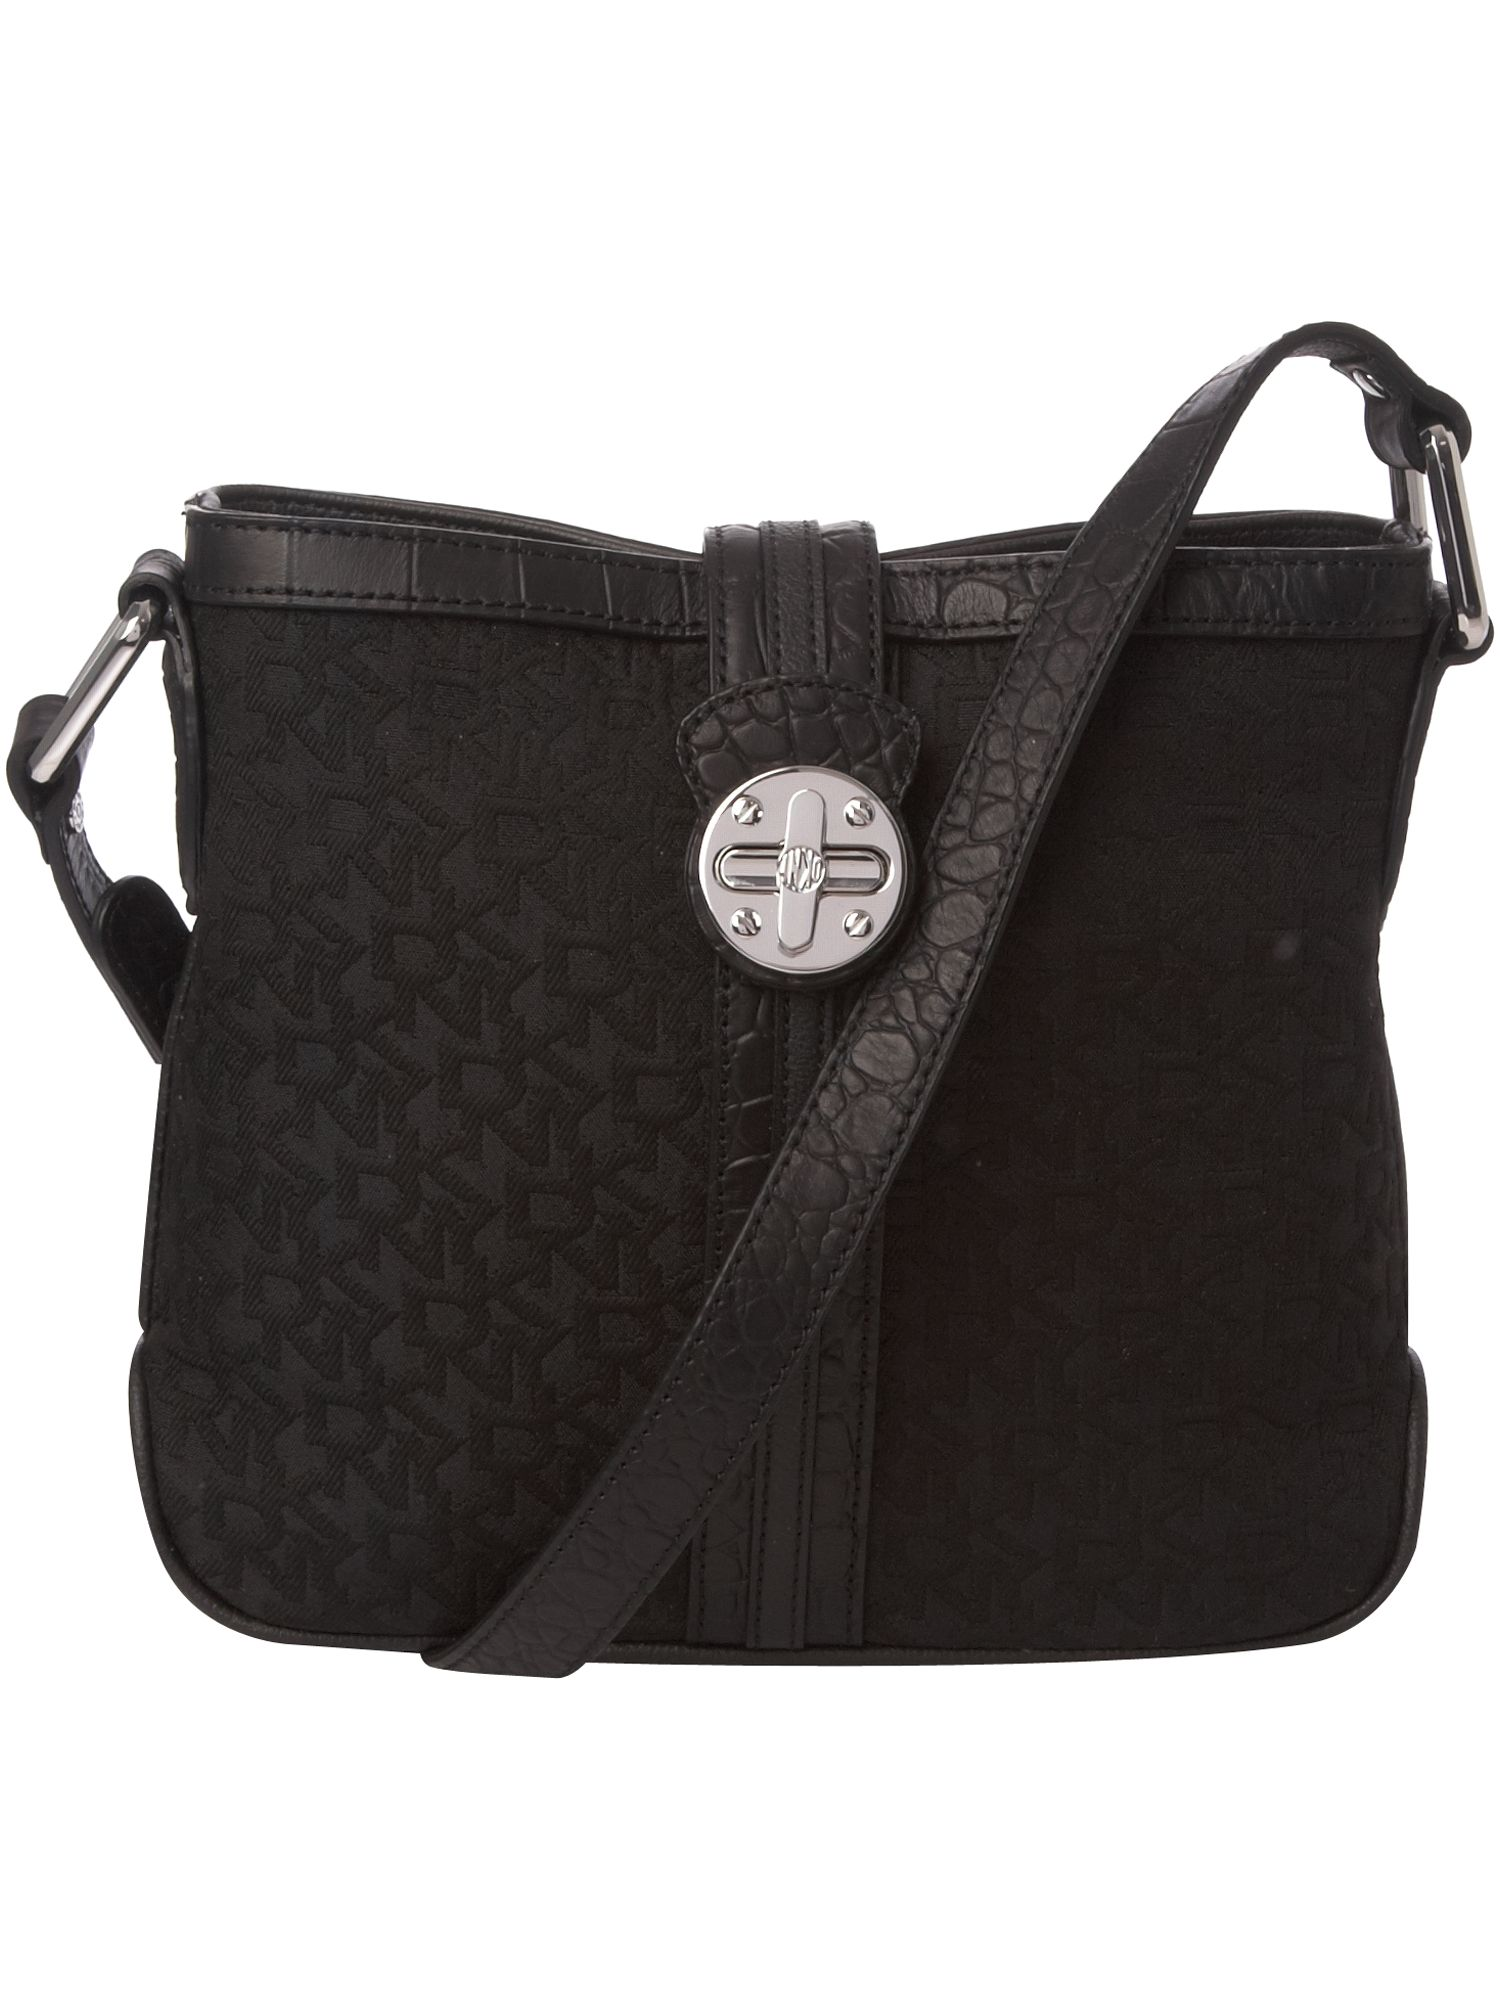 DKNY Turnlock Town and Country nylon cross body product image